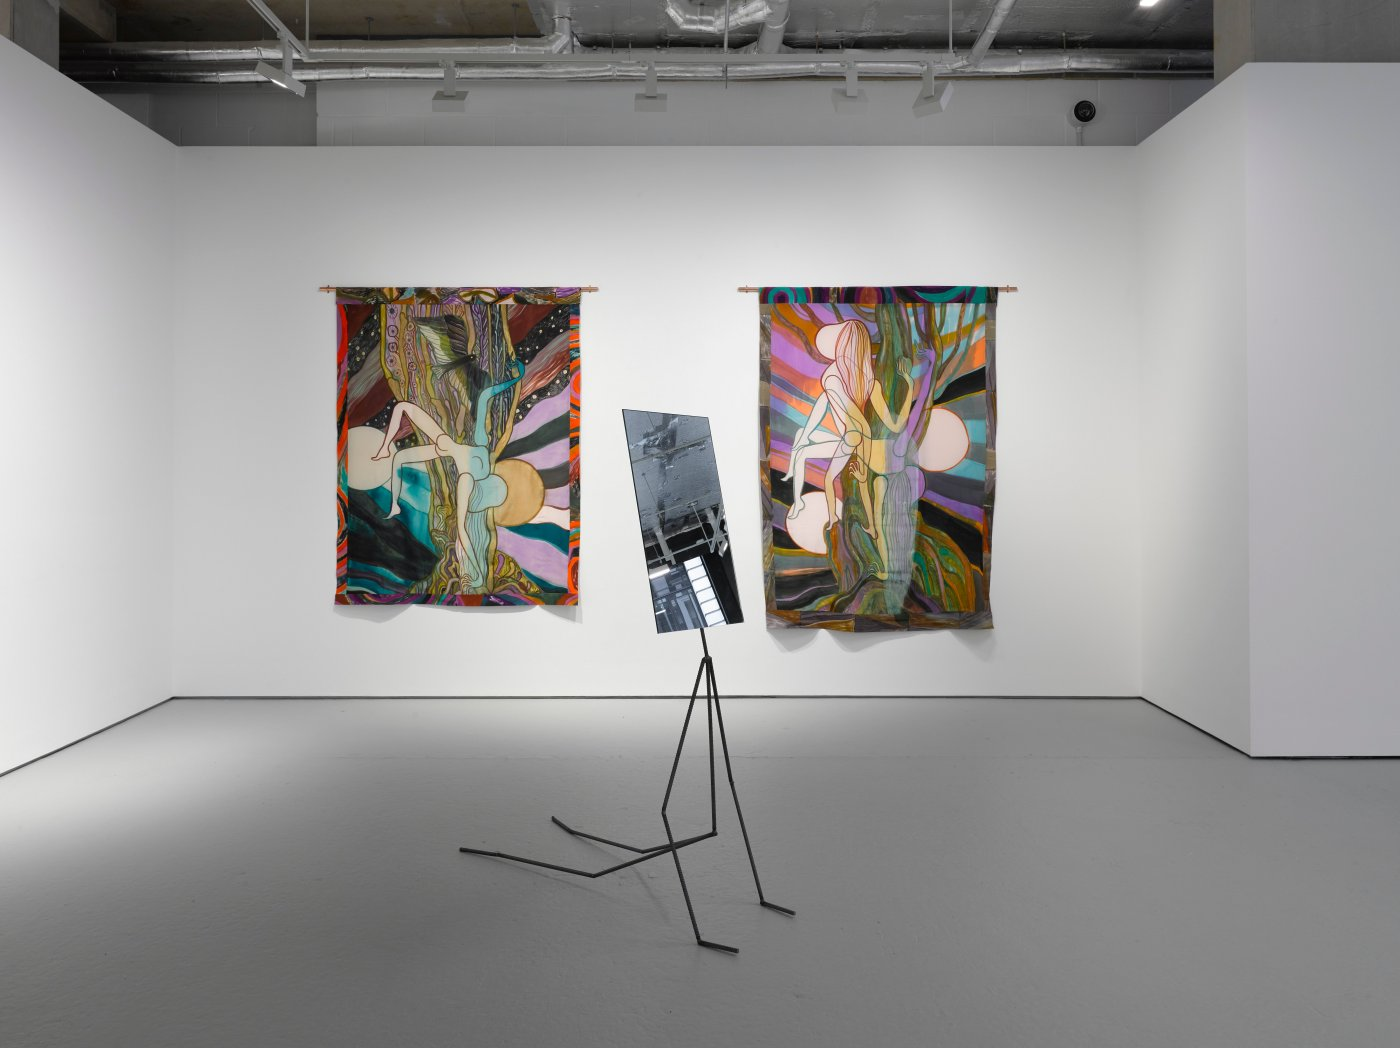 Lisson Gallery Delights of an Undirected Mind 4